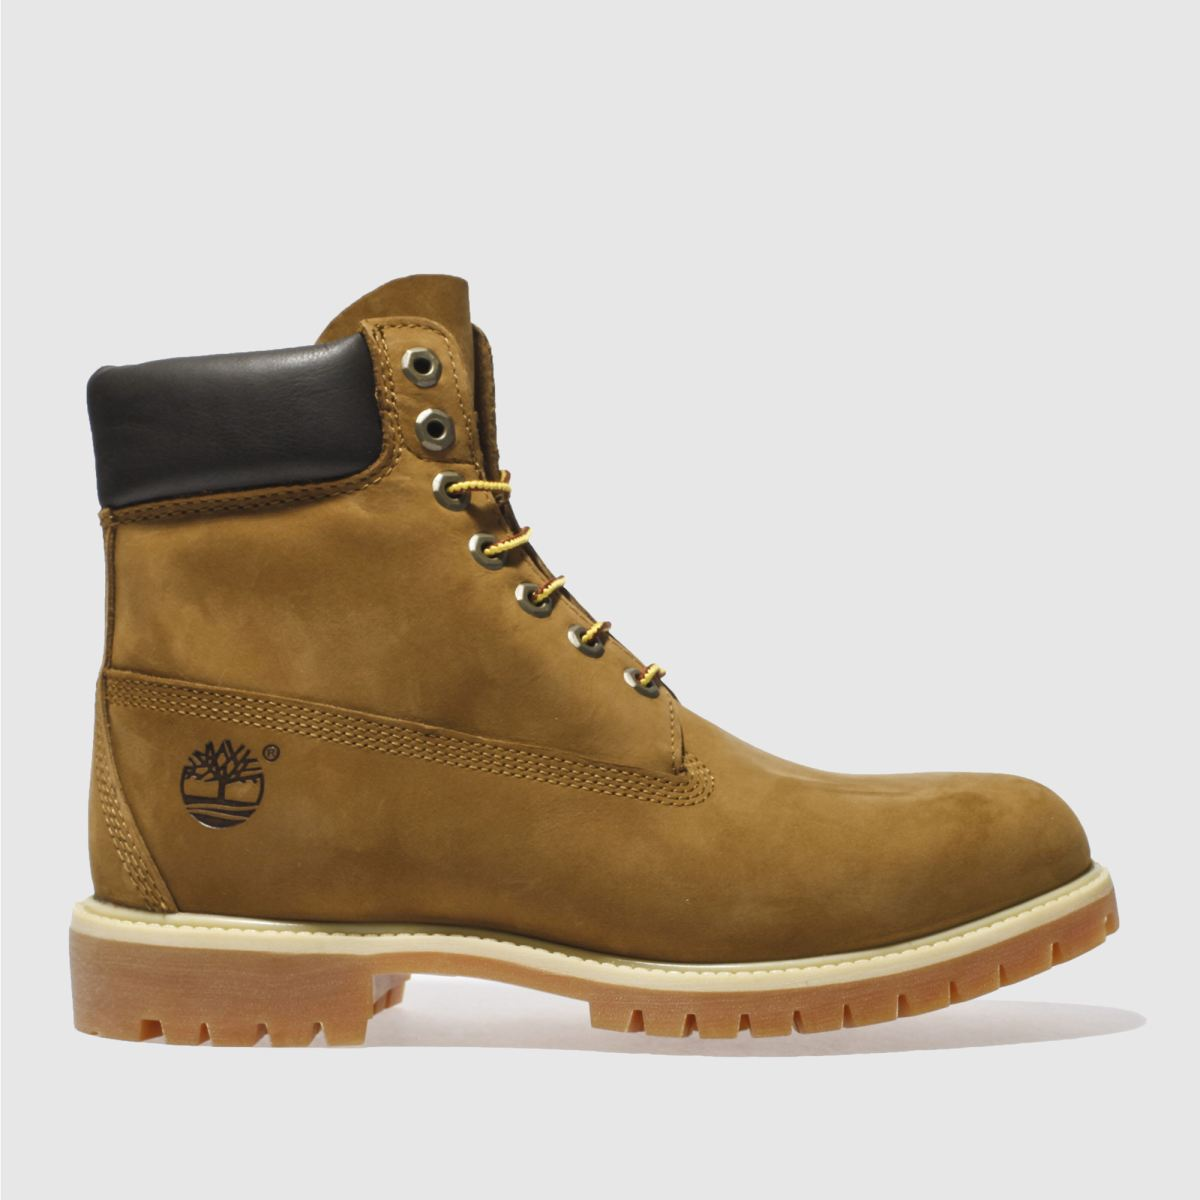 Timberland Tan 6 Inch Premium Boots